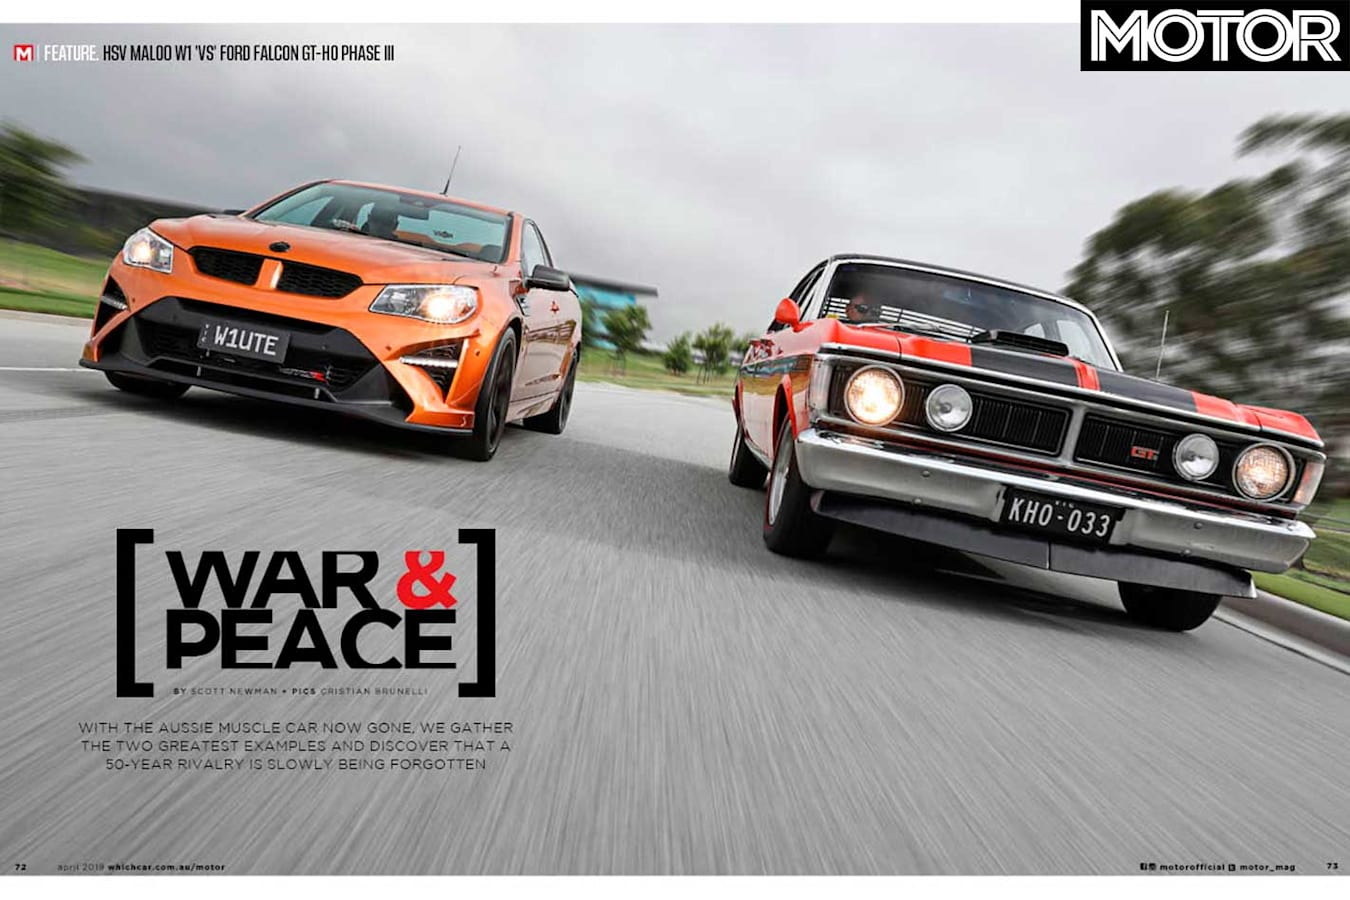 MOTOR Magazine April 2019 Issue HSV Maloo W 1 Vs Ford Falcon GT HO Phase III Feature Jpg